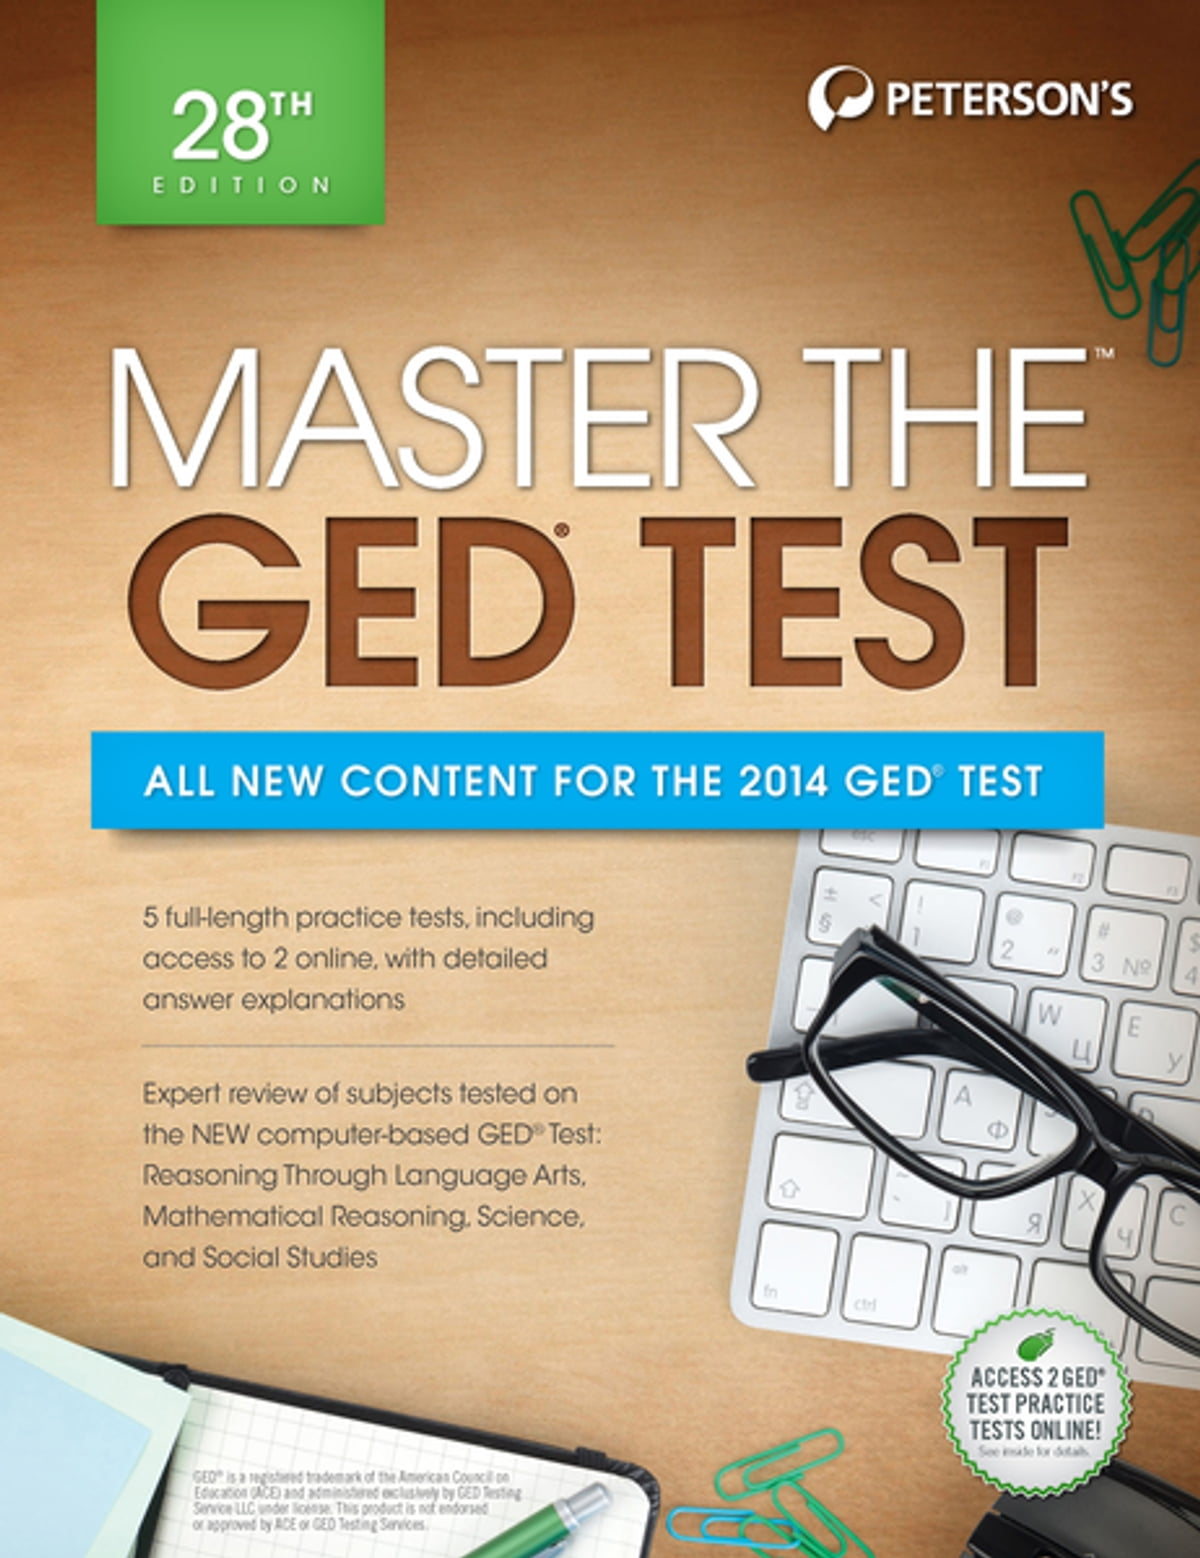 Master the GED Test, 28th Edition eBook by Peterson's - 9780768938883 |  Rakuten Kobo